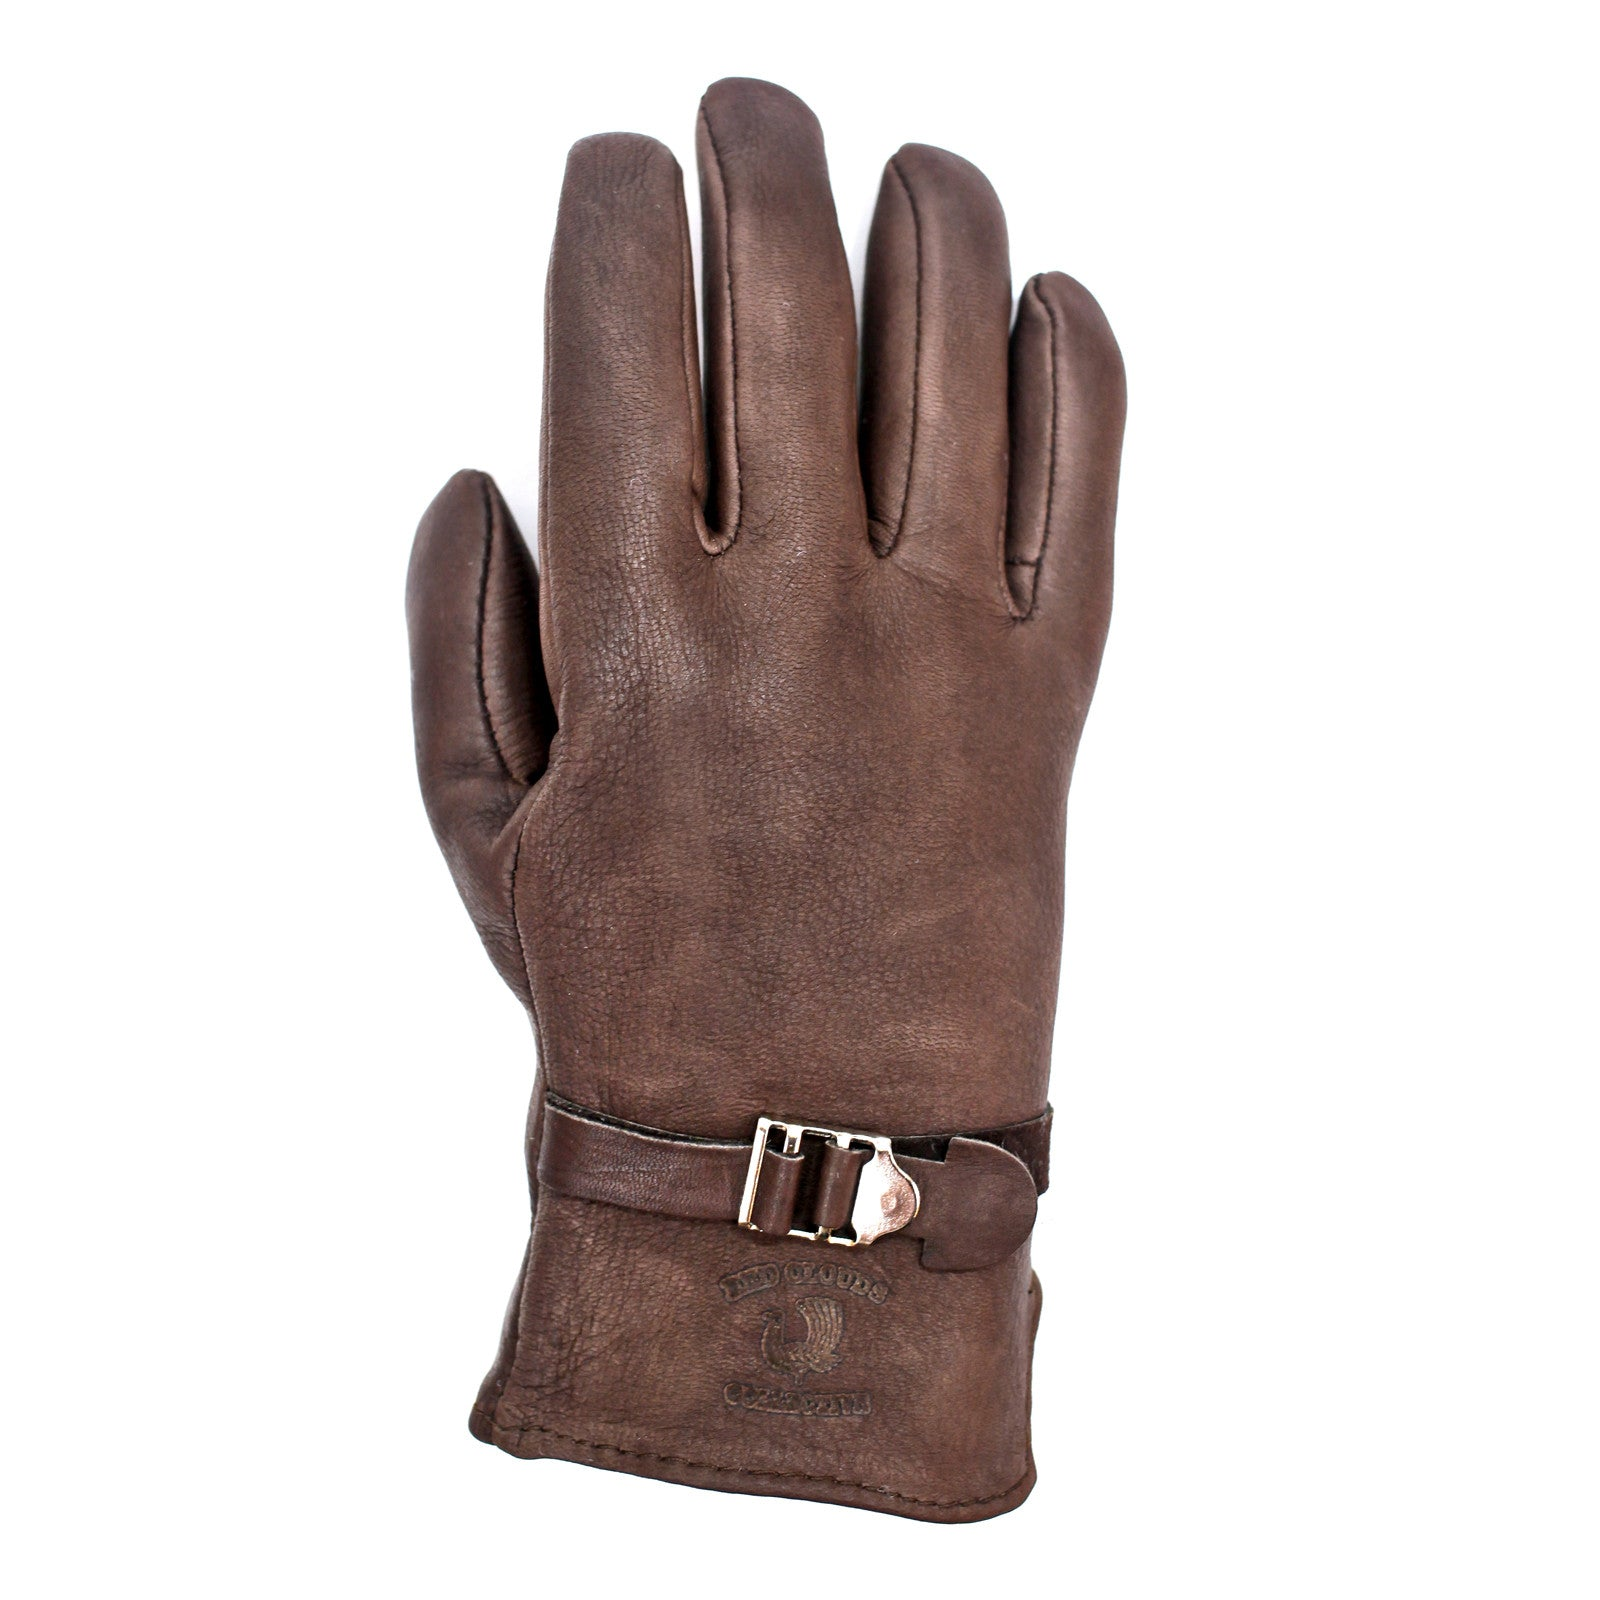 leather glove, made in usa glove, brown leather glove, geier glove, red clouds glove, moto glove, motorcycle gloves, thin leather gloves